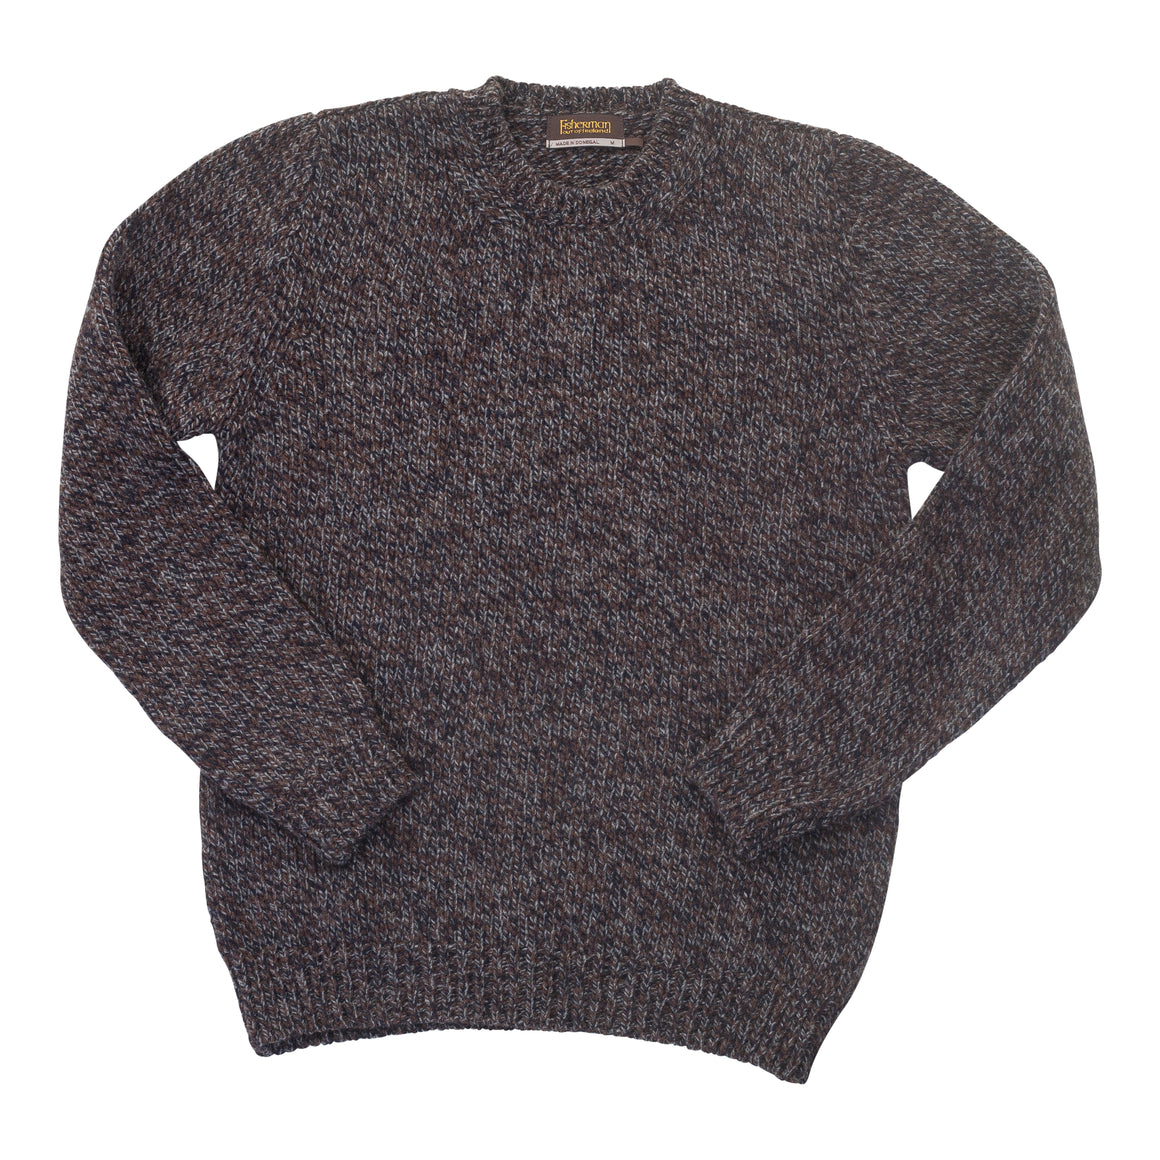 Luxury Donegal Knit for Men in Navy Peat